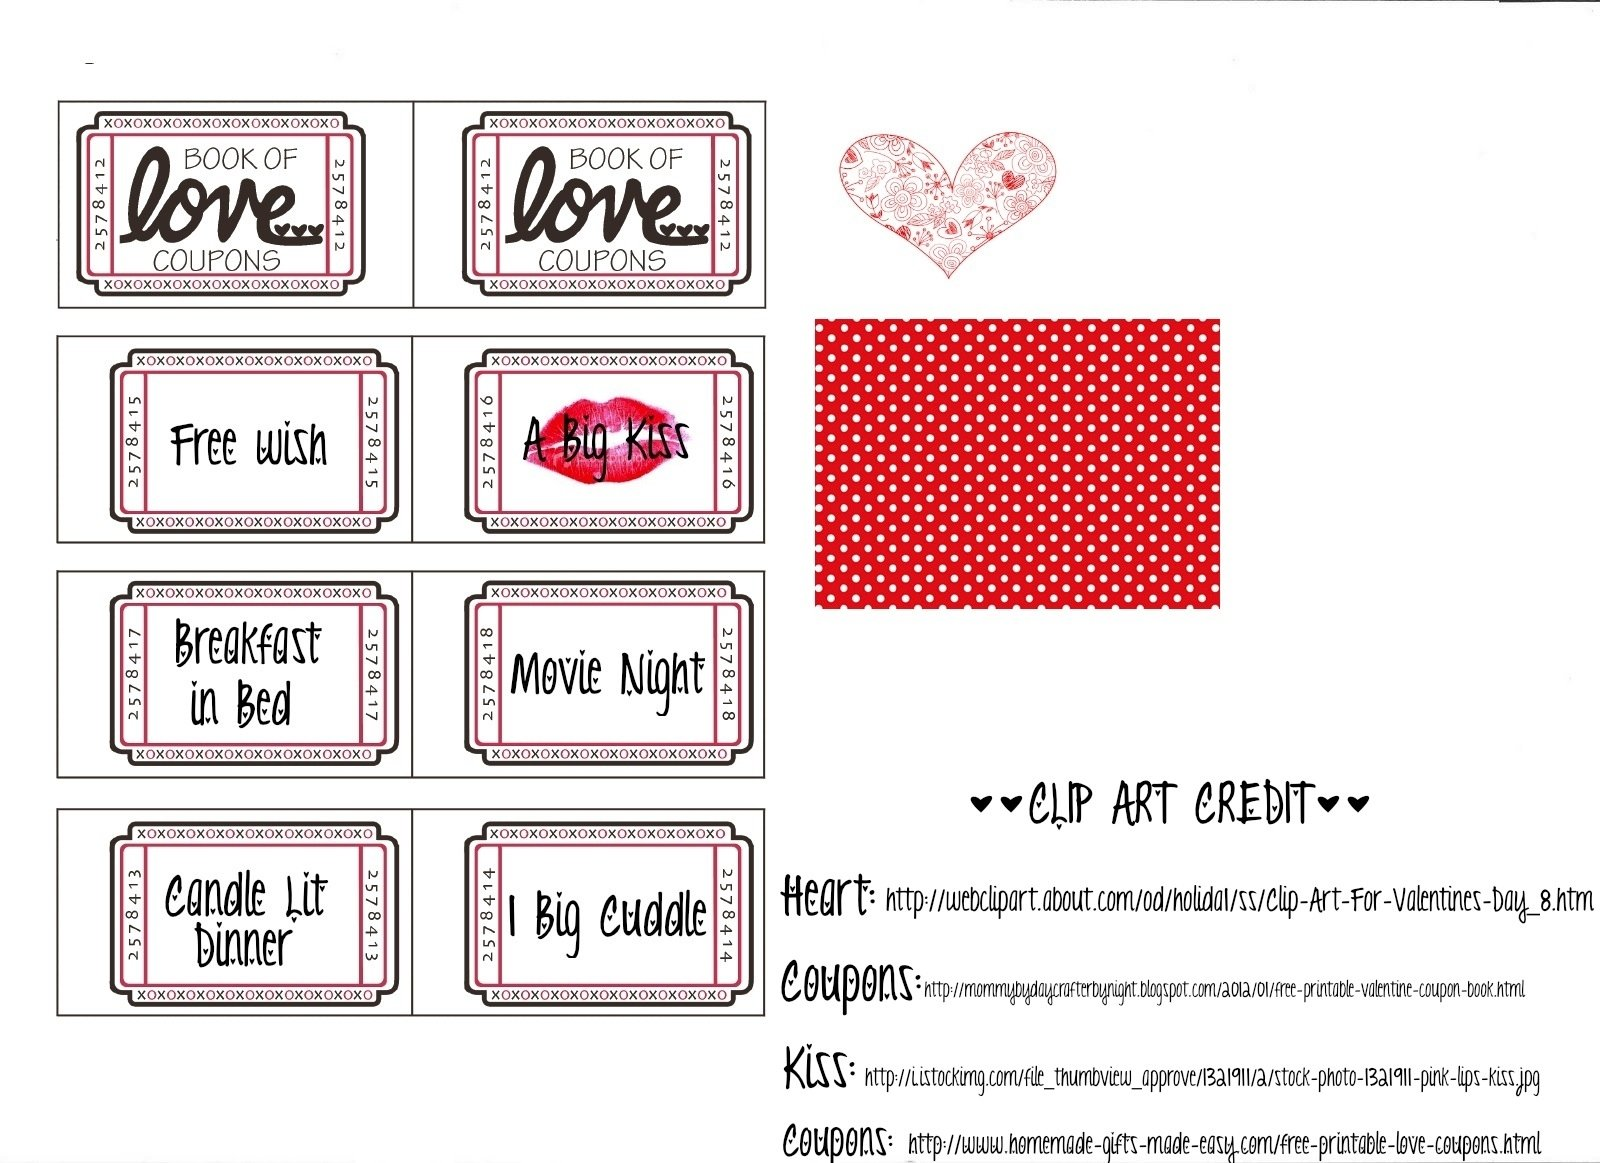 10 Great Coupon Book Ideas For Boyfriend make a coupon book for boyfriend daway dabrowa co 1